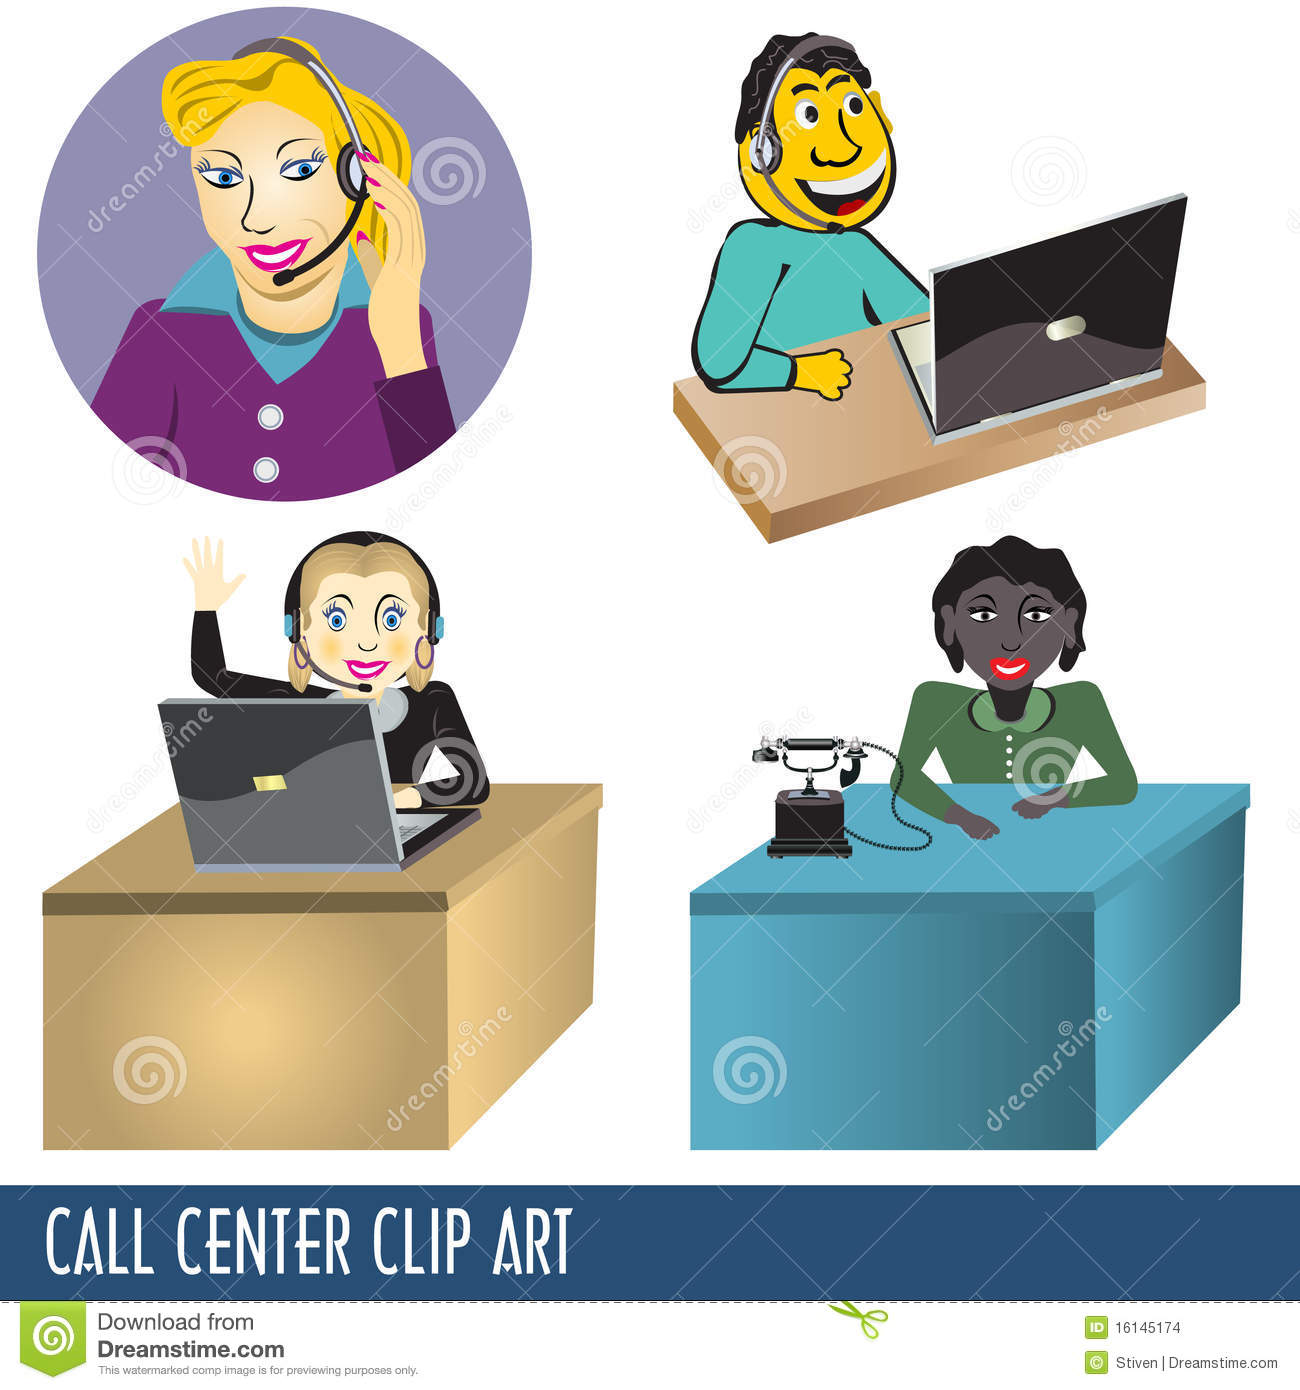 Call Center Clipart.